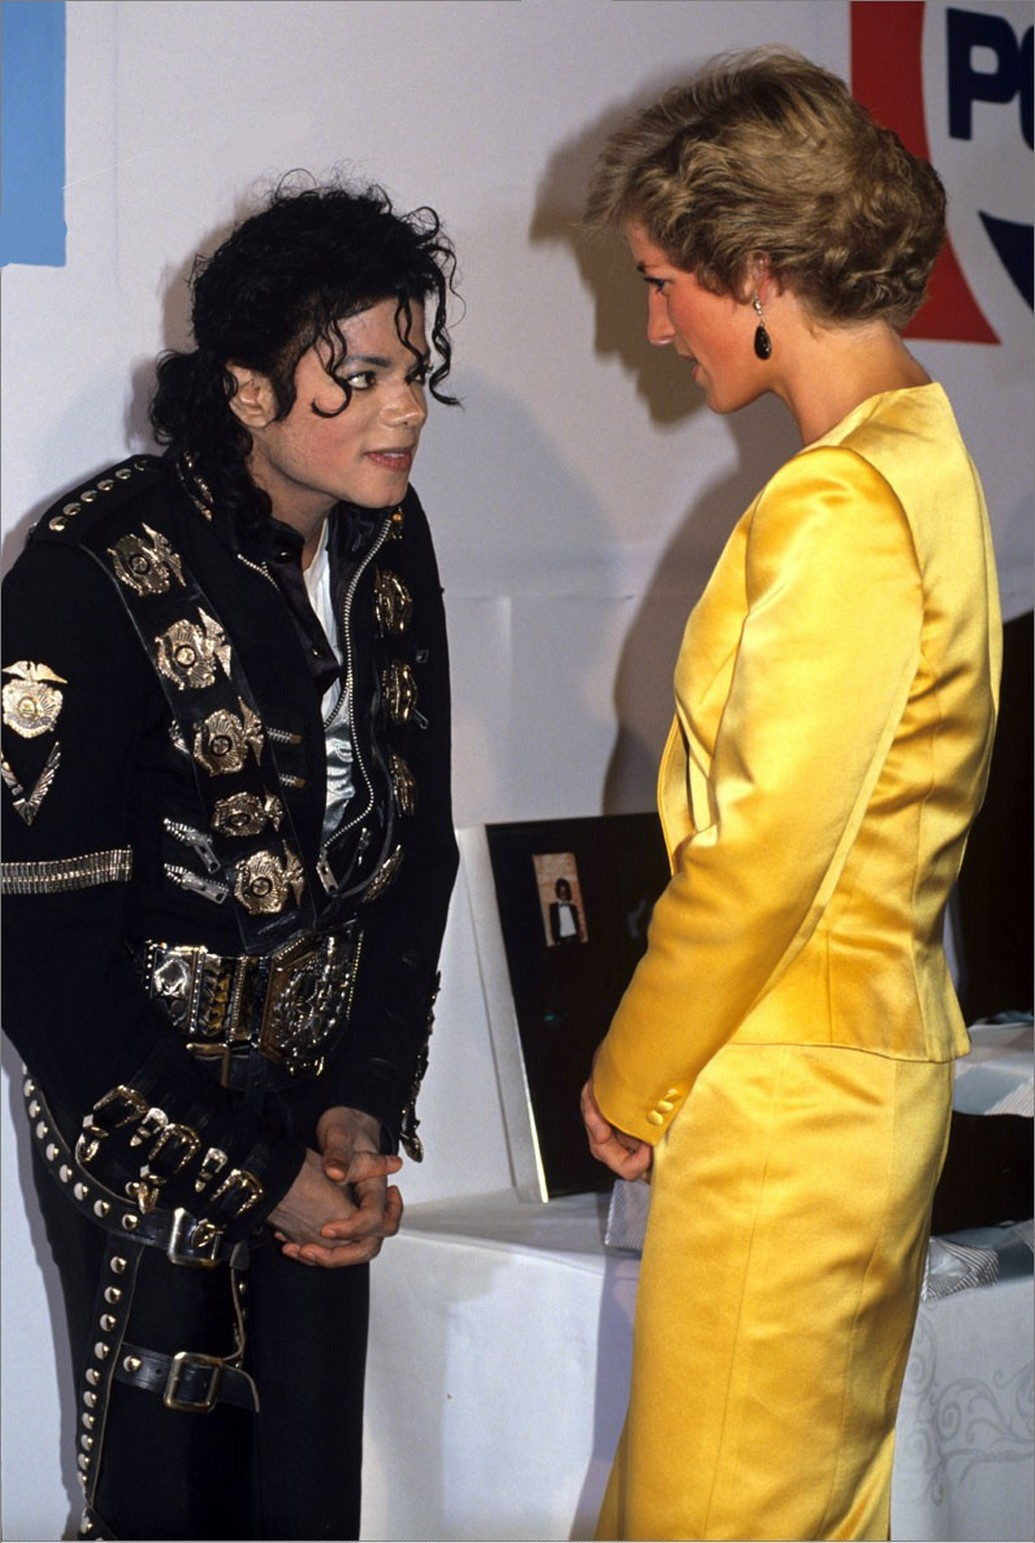 Michael and Princess